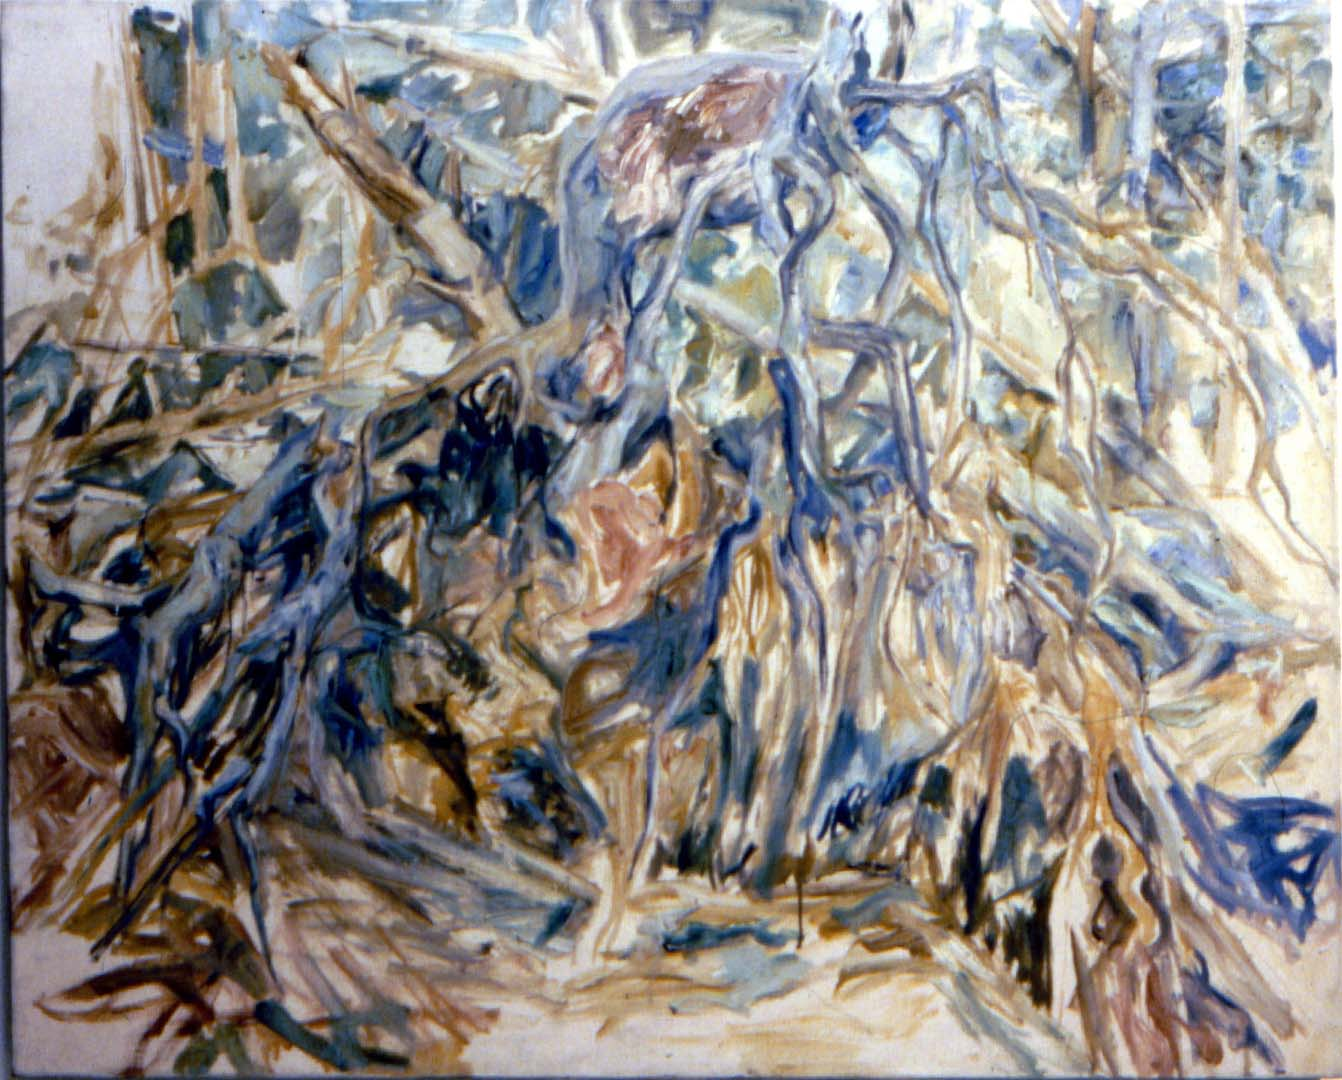 1956 Uprooted Tree Oil on Canvas 40 x 50